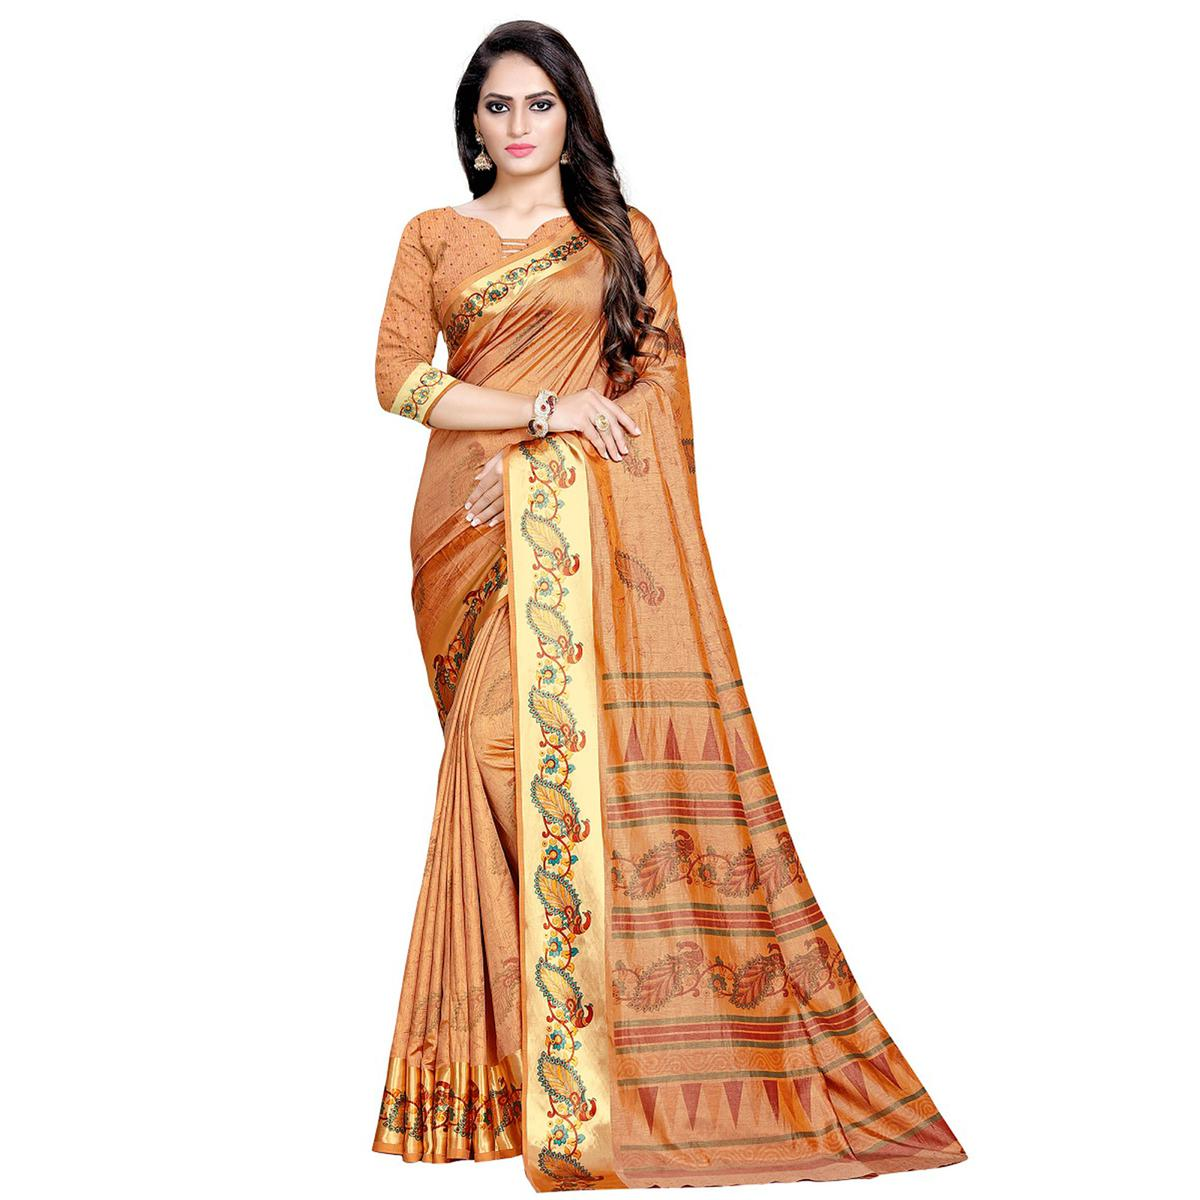 Dazzling Brown Colored Festive Wear Art Silk Saree